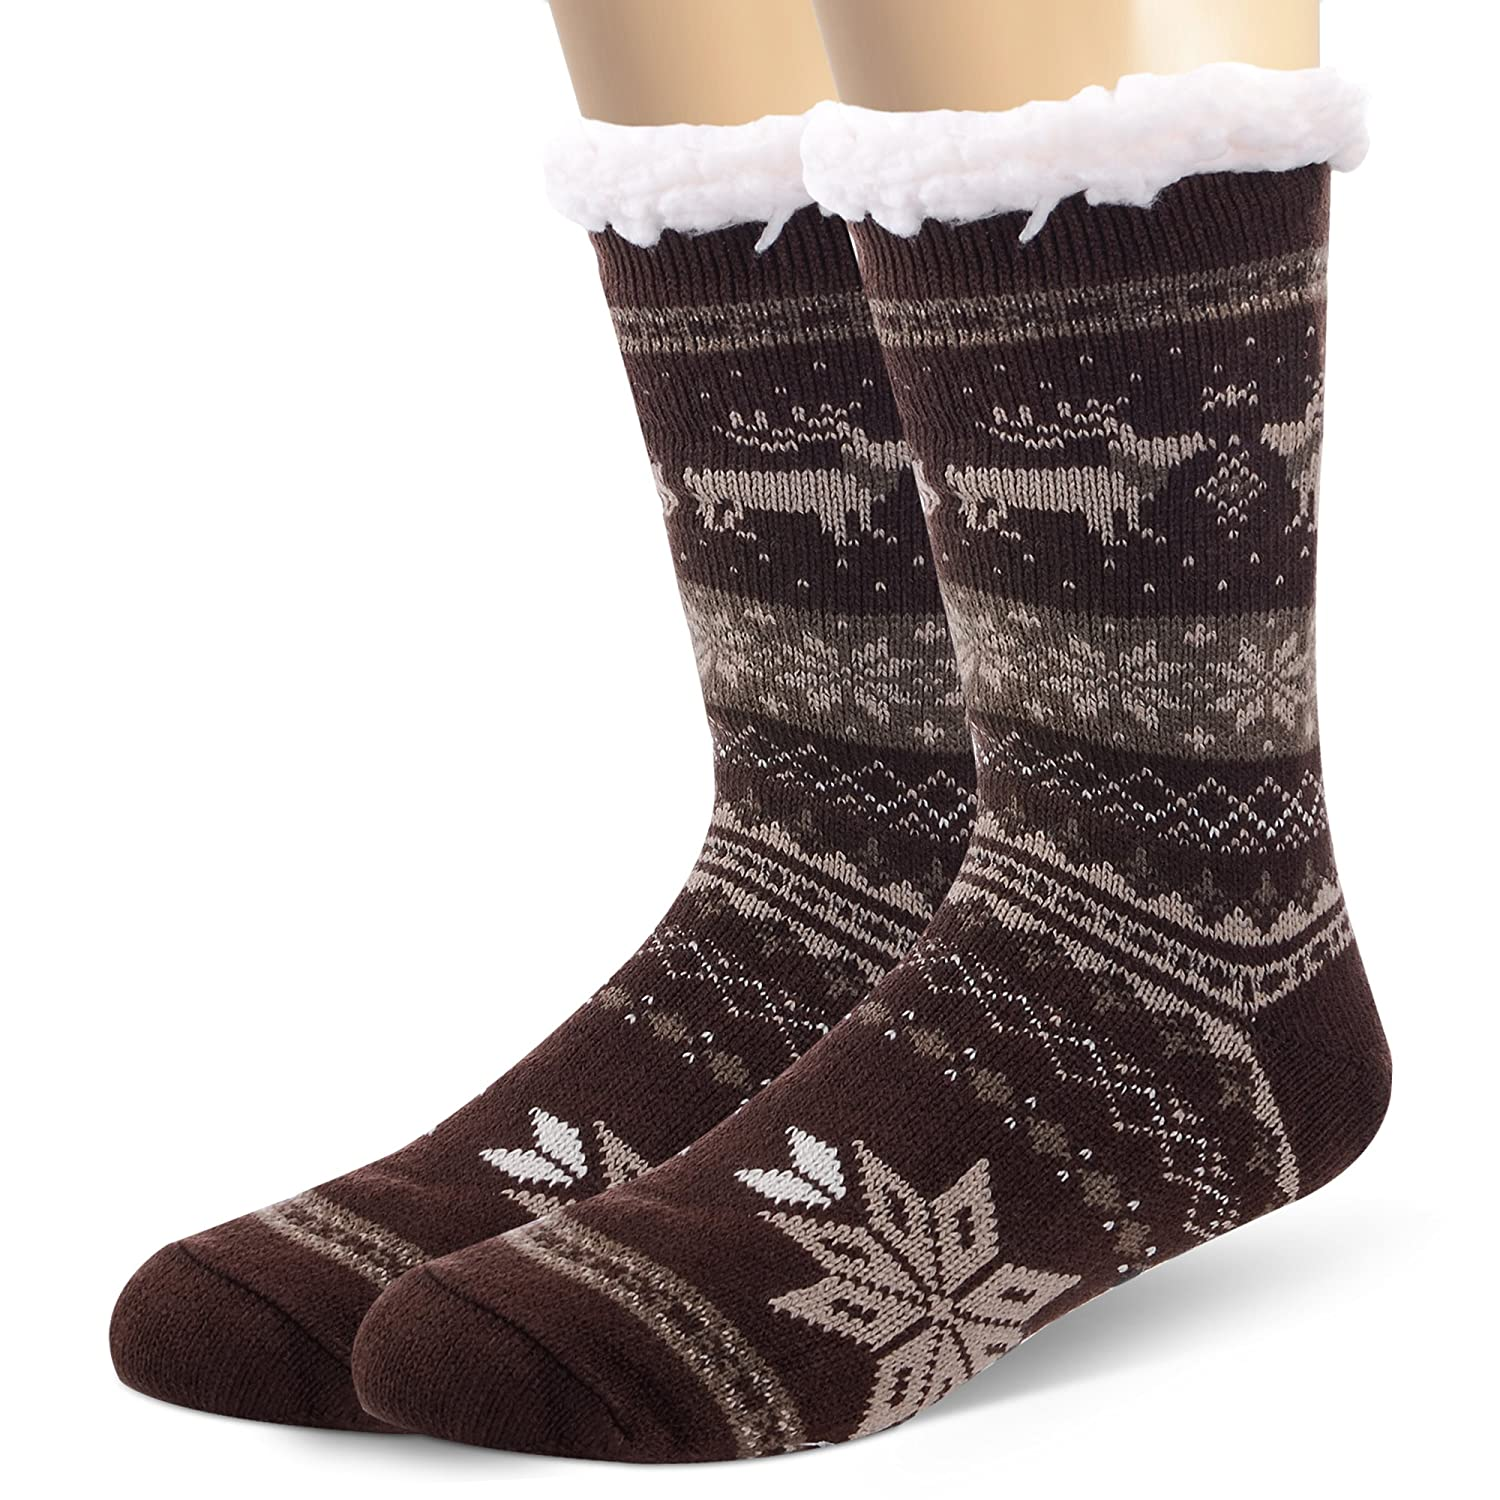 ANTSANG Mens Warm Fleece Lined Knit Fuzzy Thick Winter Slipper Socks Snowflake